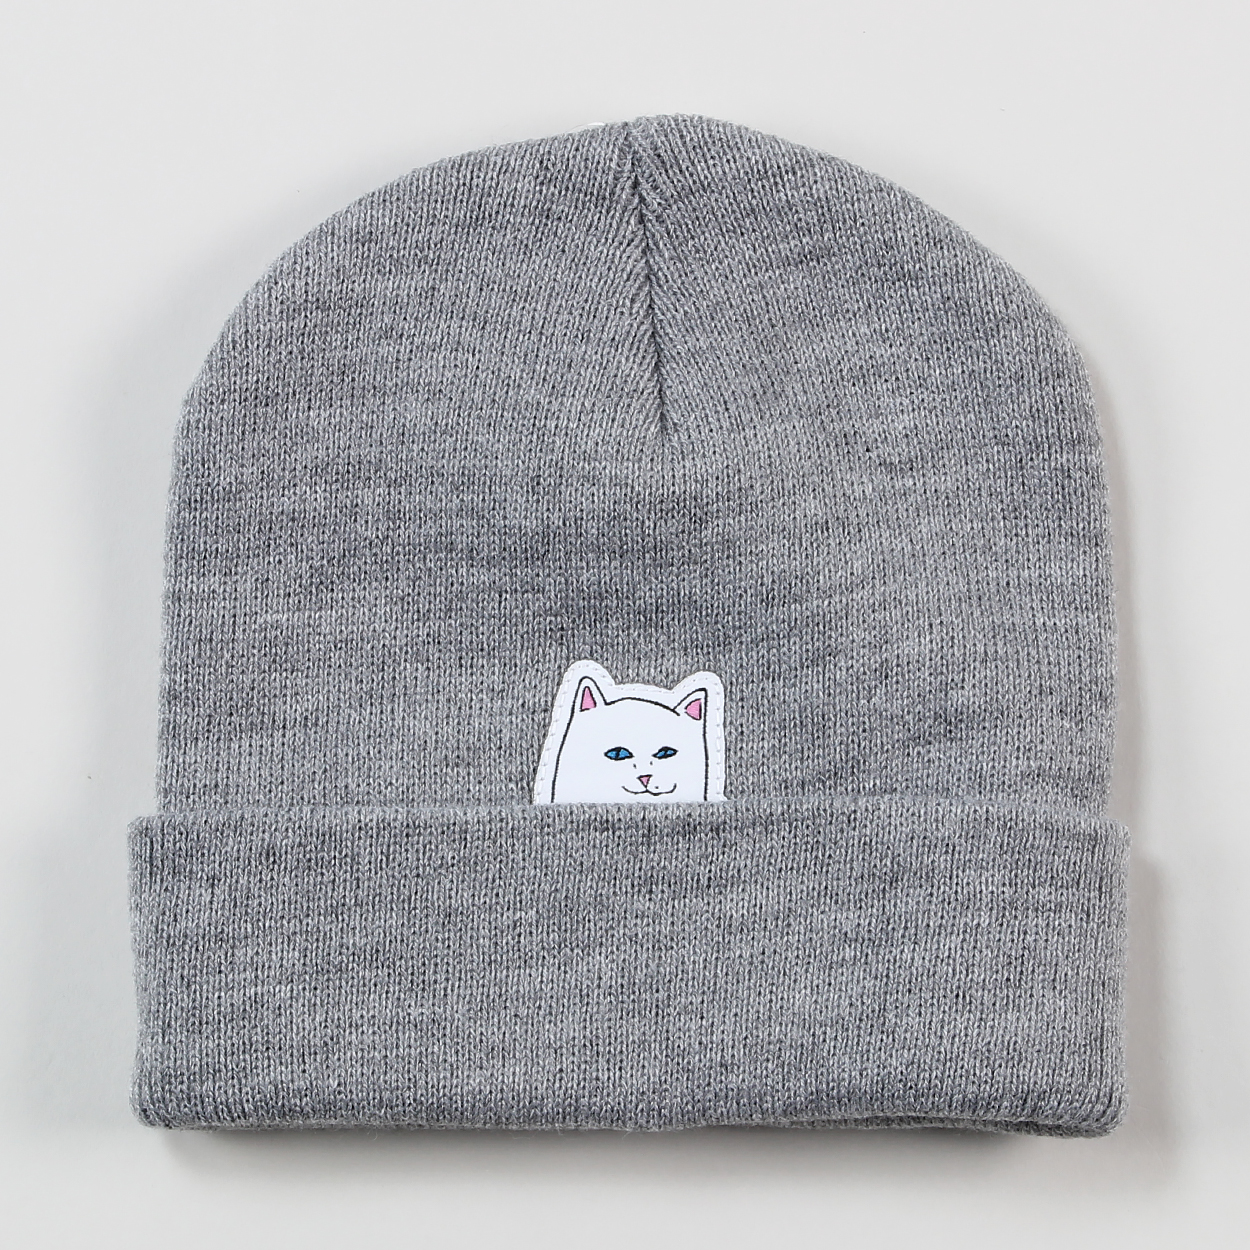 5bd294fcb4c Ripndip Accessories USA Lord Nermal Embroidered Beanie Hat Grey £15.40